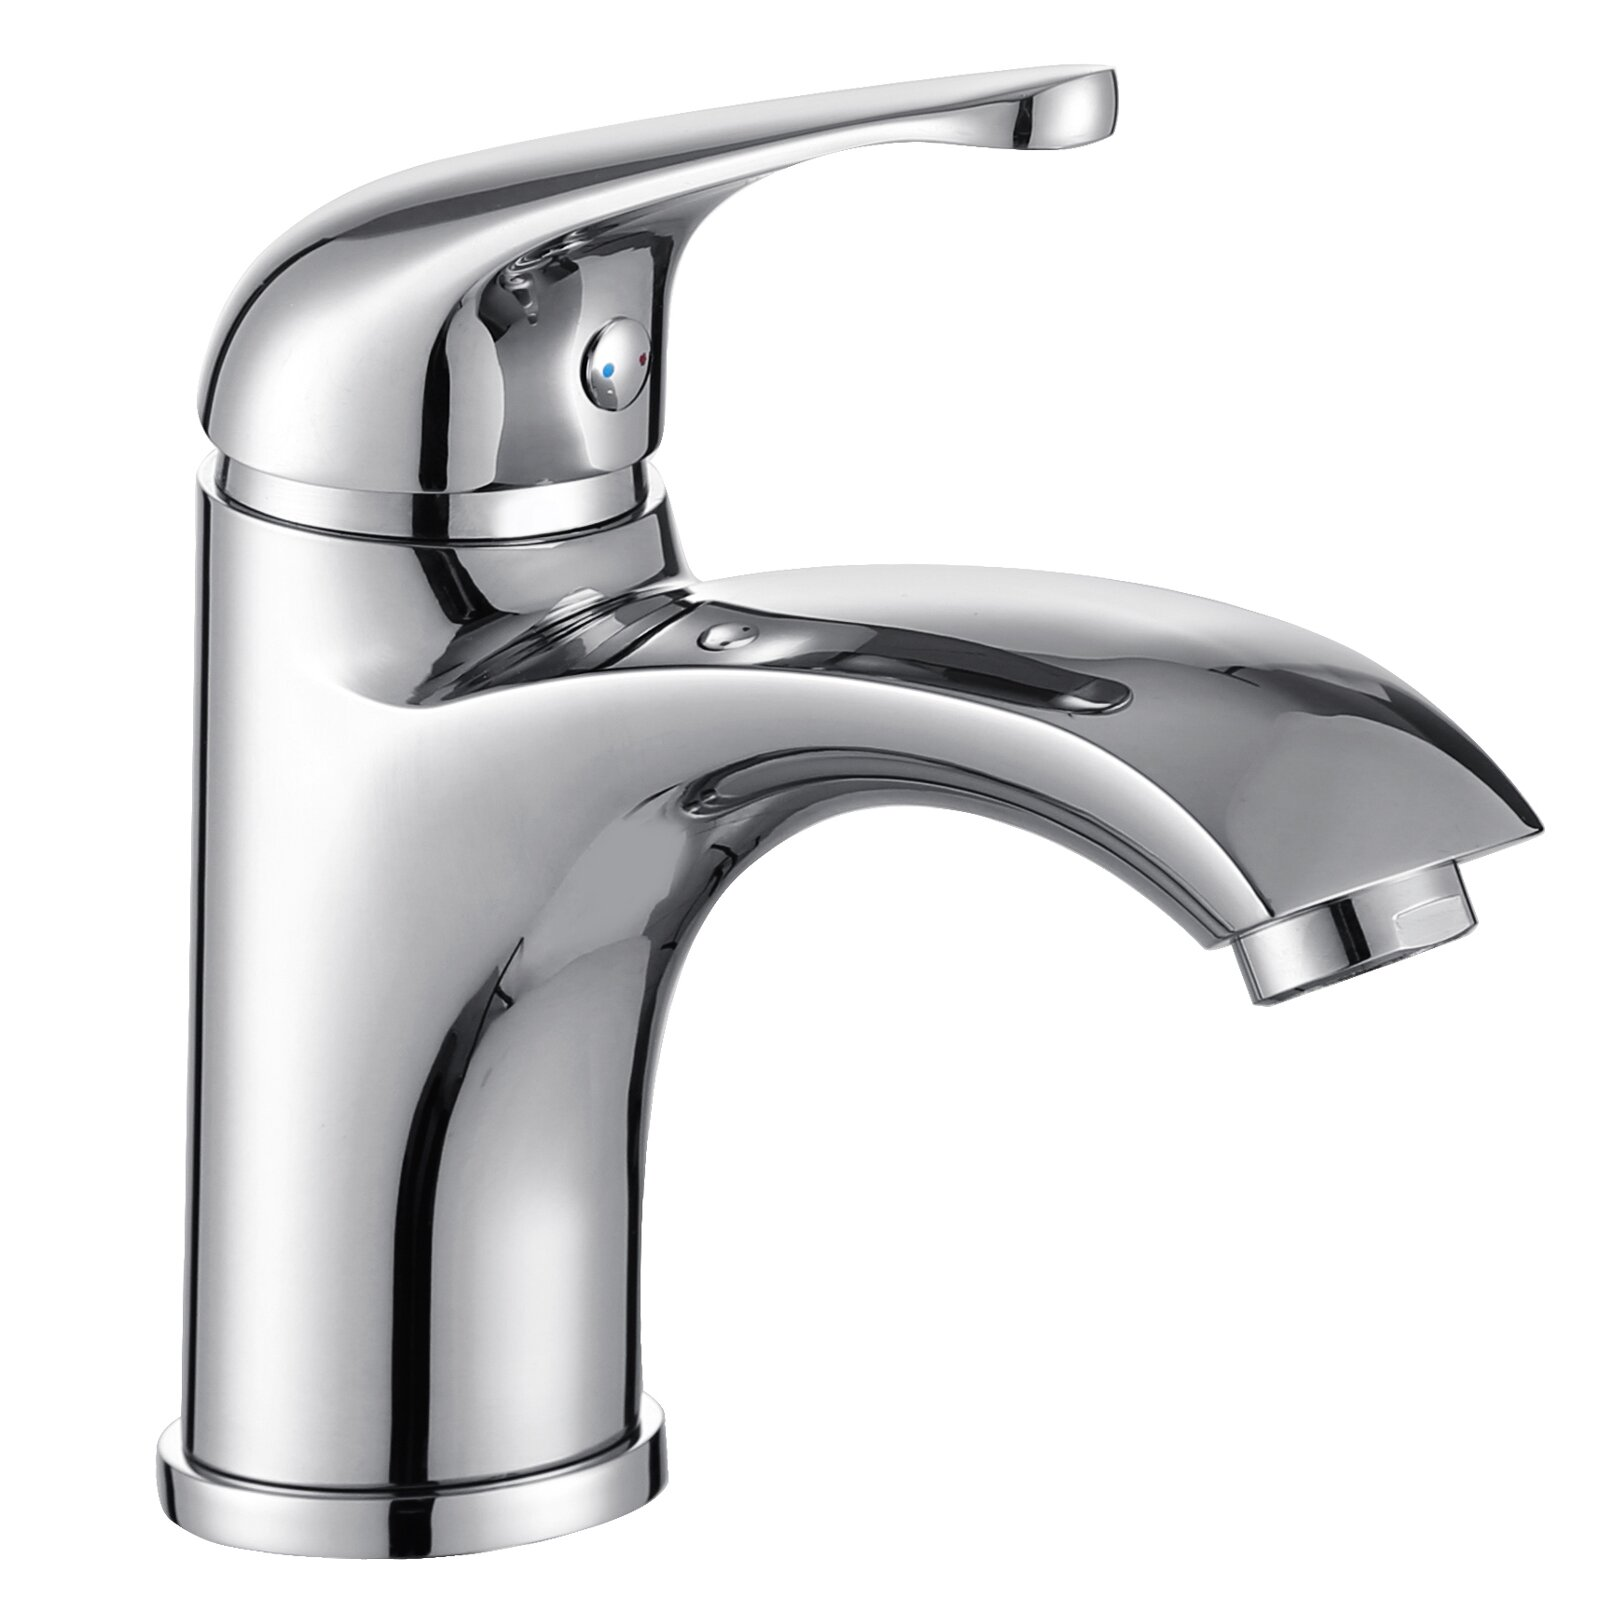 Single Lever Bathroom Faucets: Single Handle Bathroom Faucet With Edged Spout